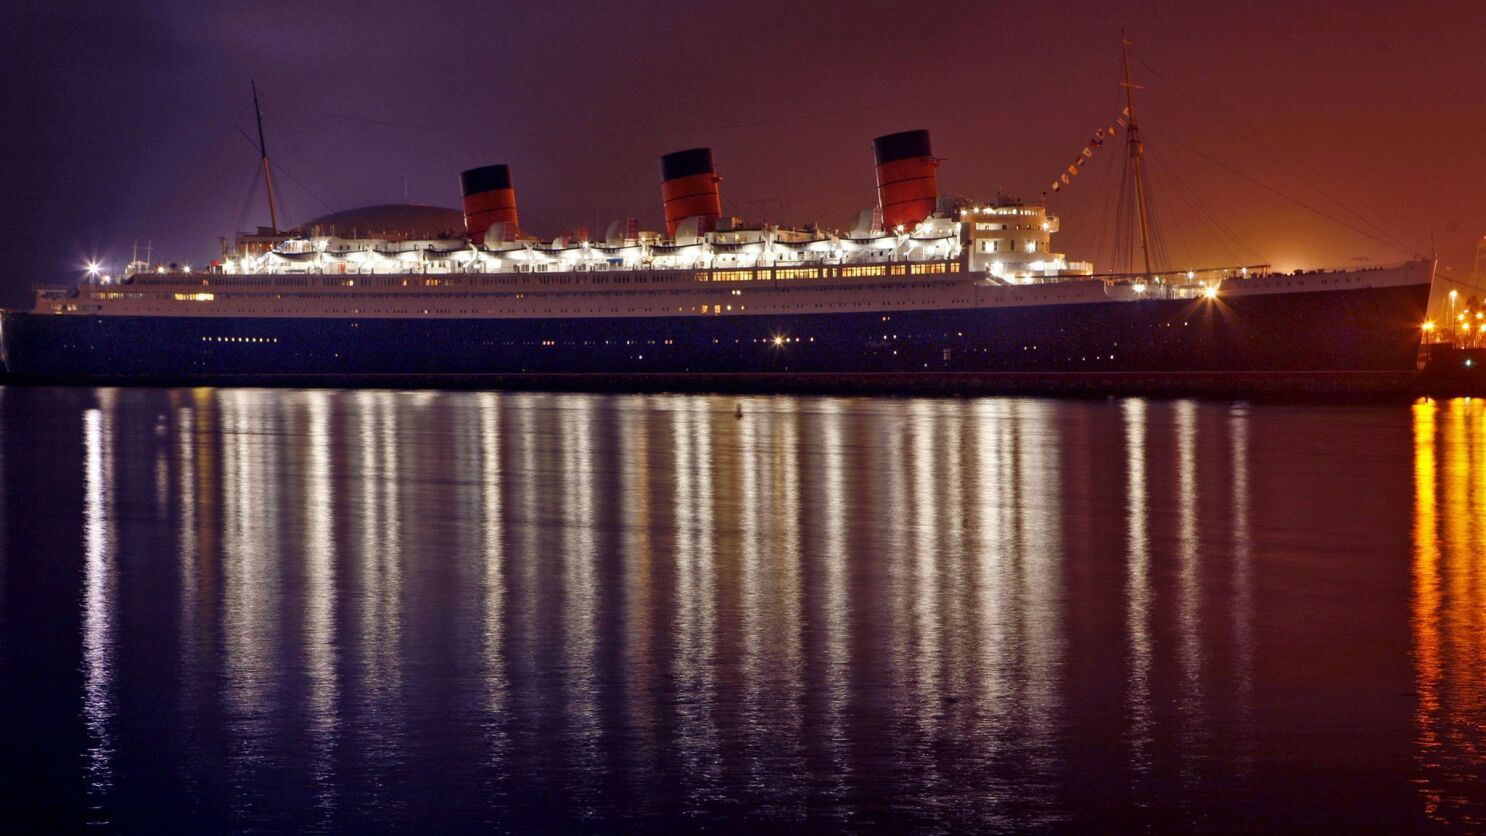 Hoping to draw guests, the Queen Mary offers 'haunted' room starting Friday, the 13th - Los Angeles Times